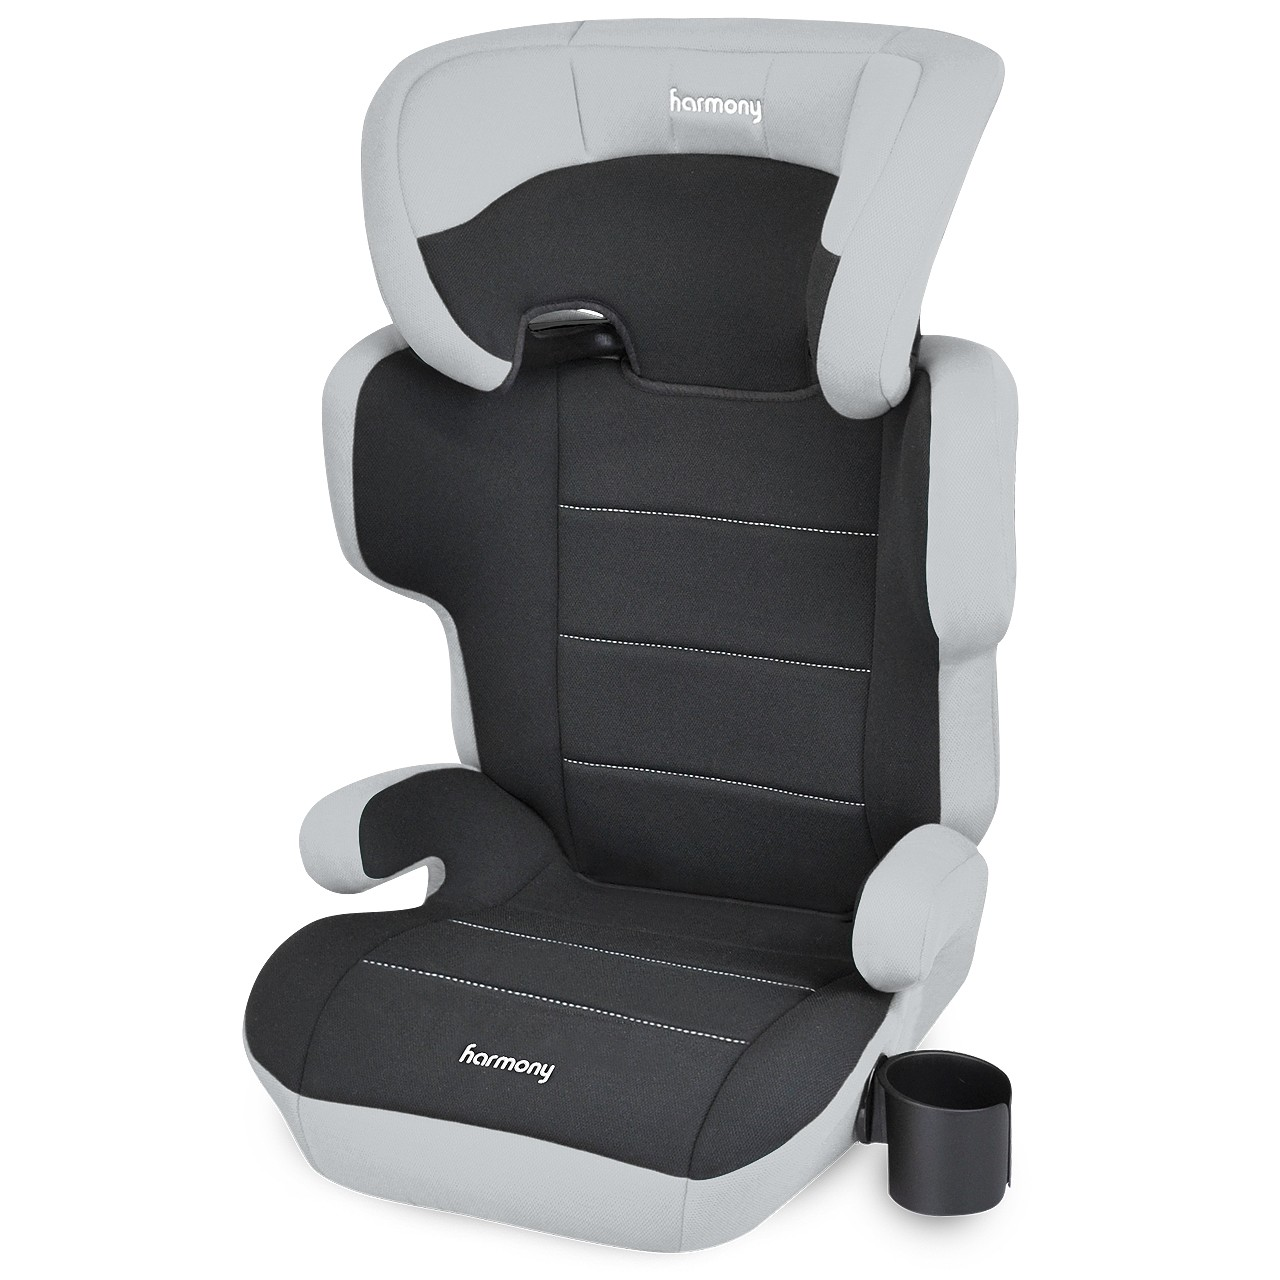 Dreamtime Elite Comfort Booster Car Seat - Grey and Black